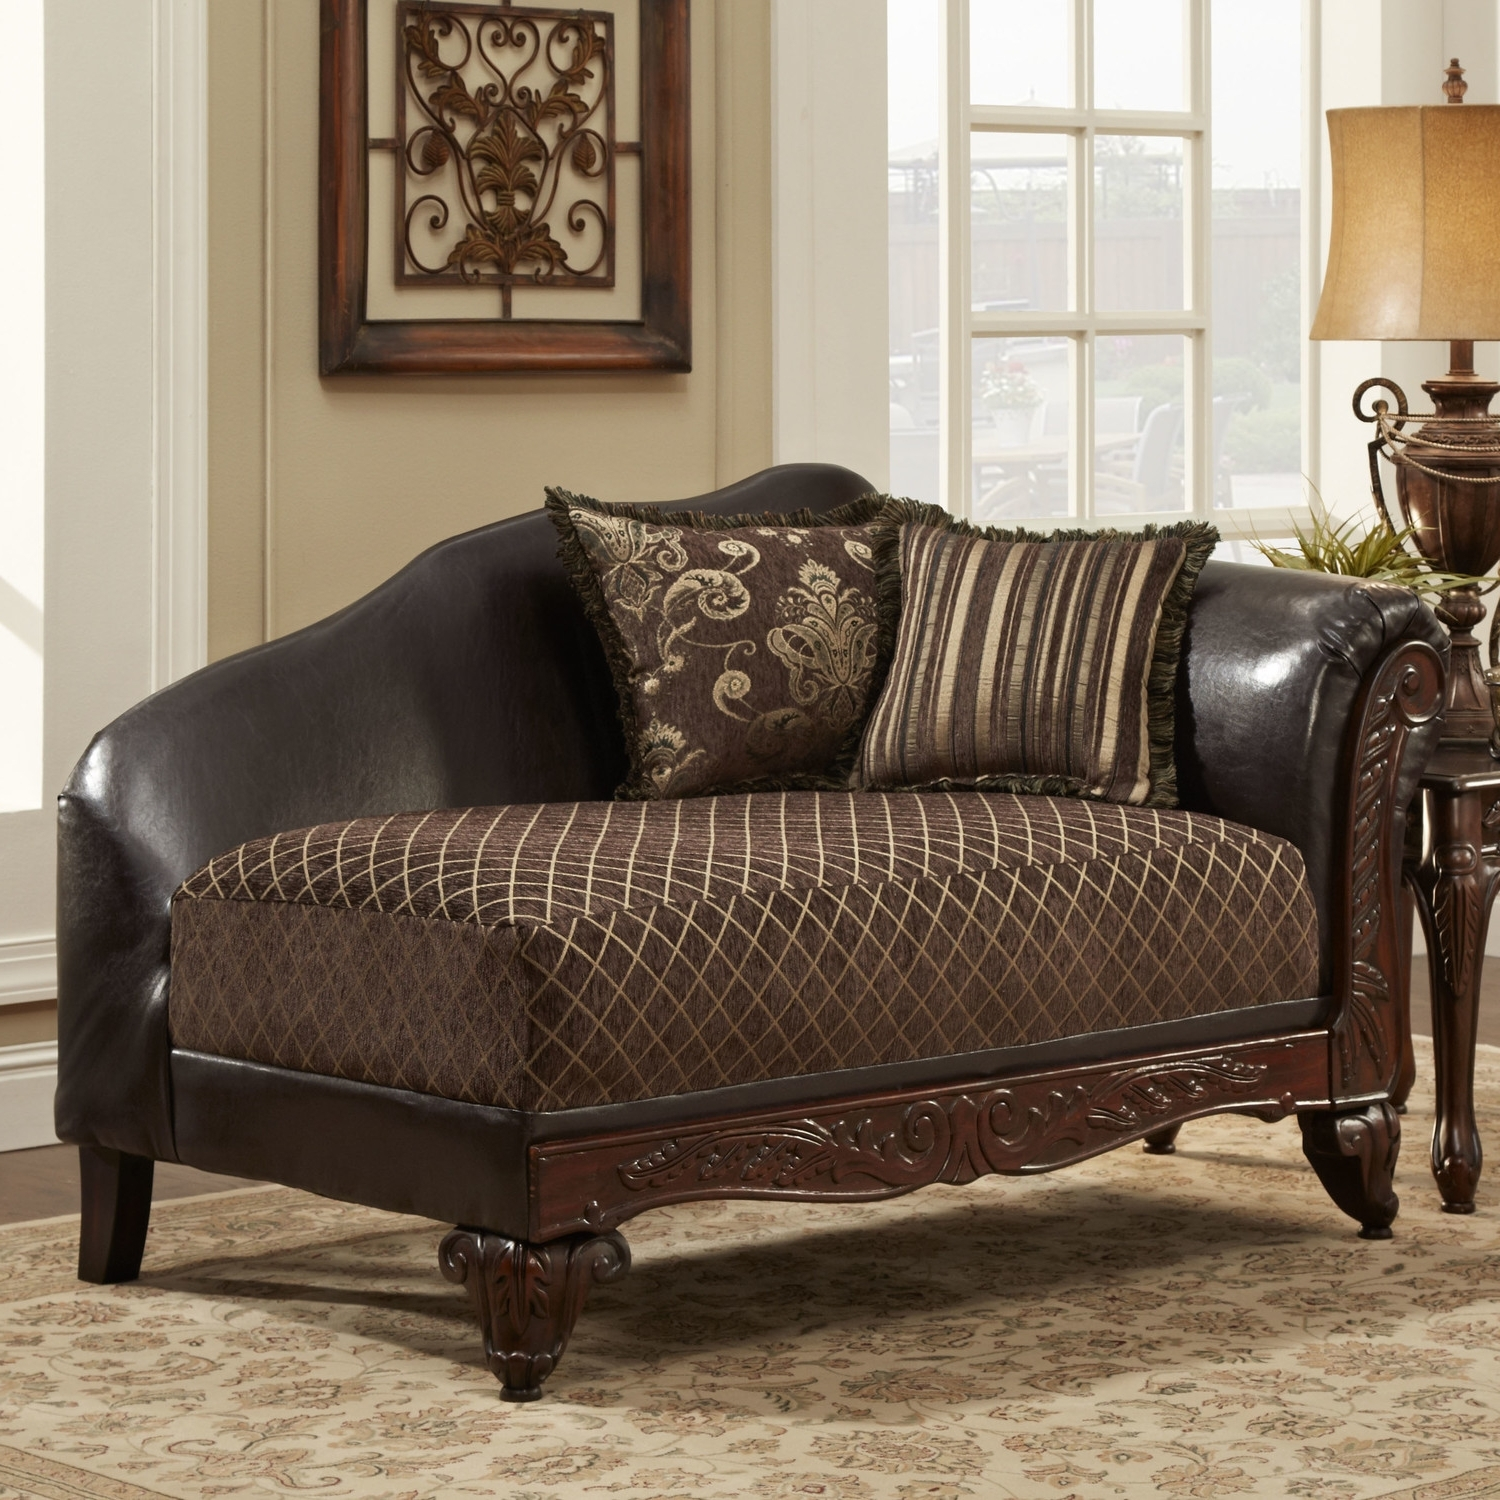 Well Known Inspirational Chaise Lounge Chairs For Bedroom (39 Photos Throughout Elegant Chaise Lounge Chairs (View 7 of 15)